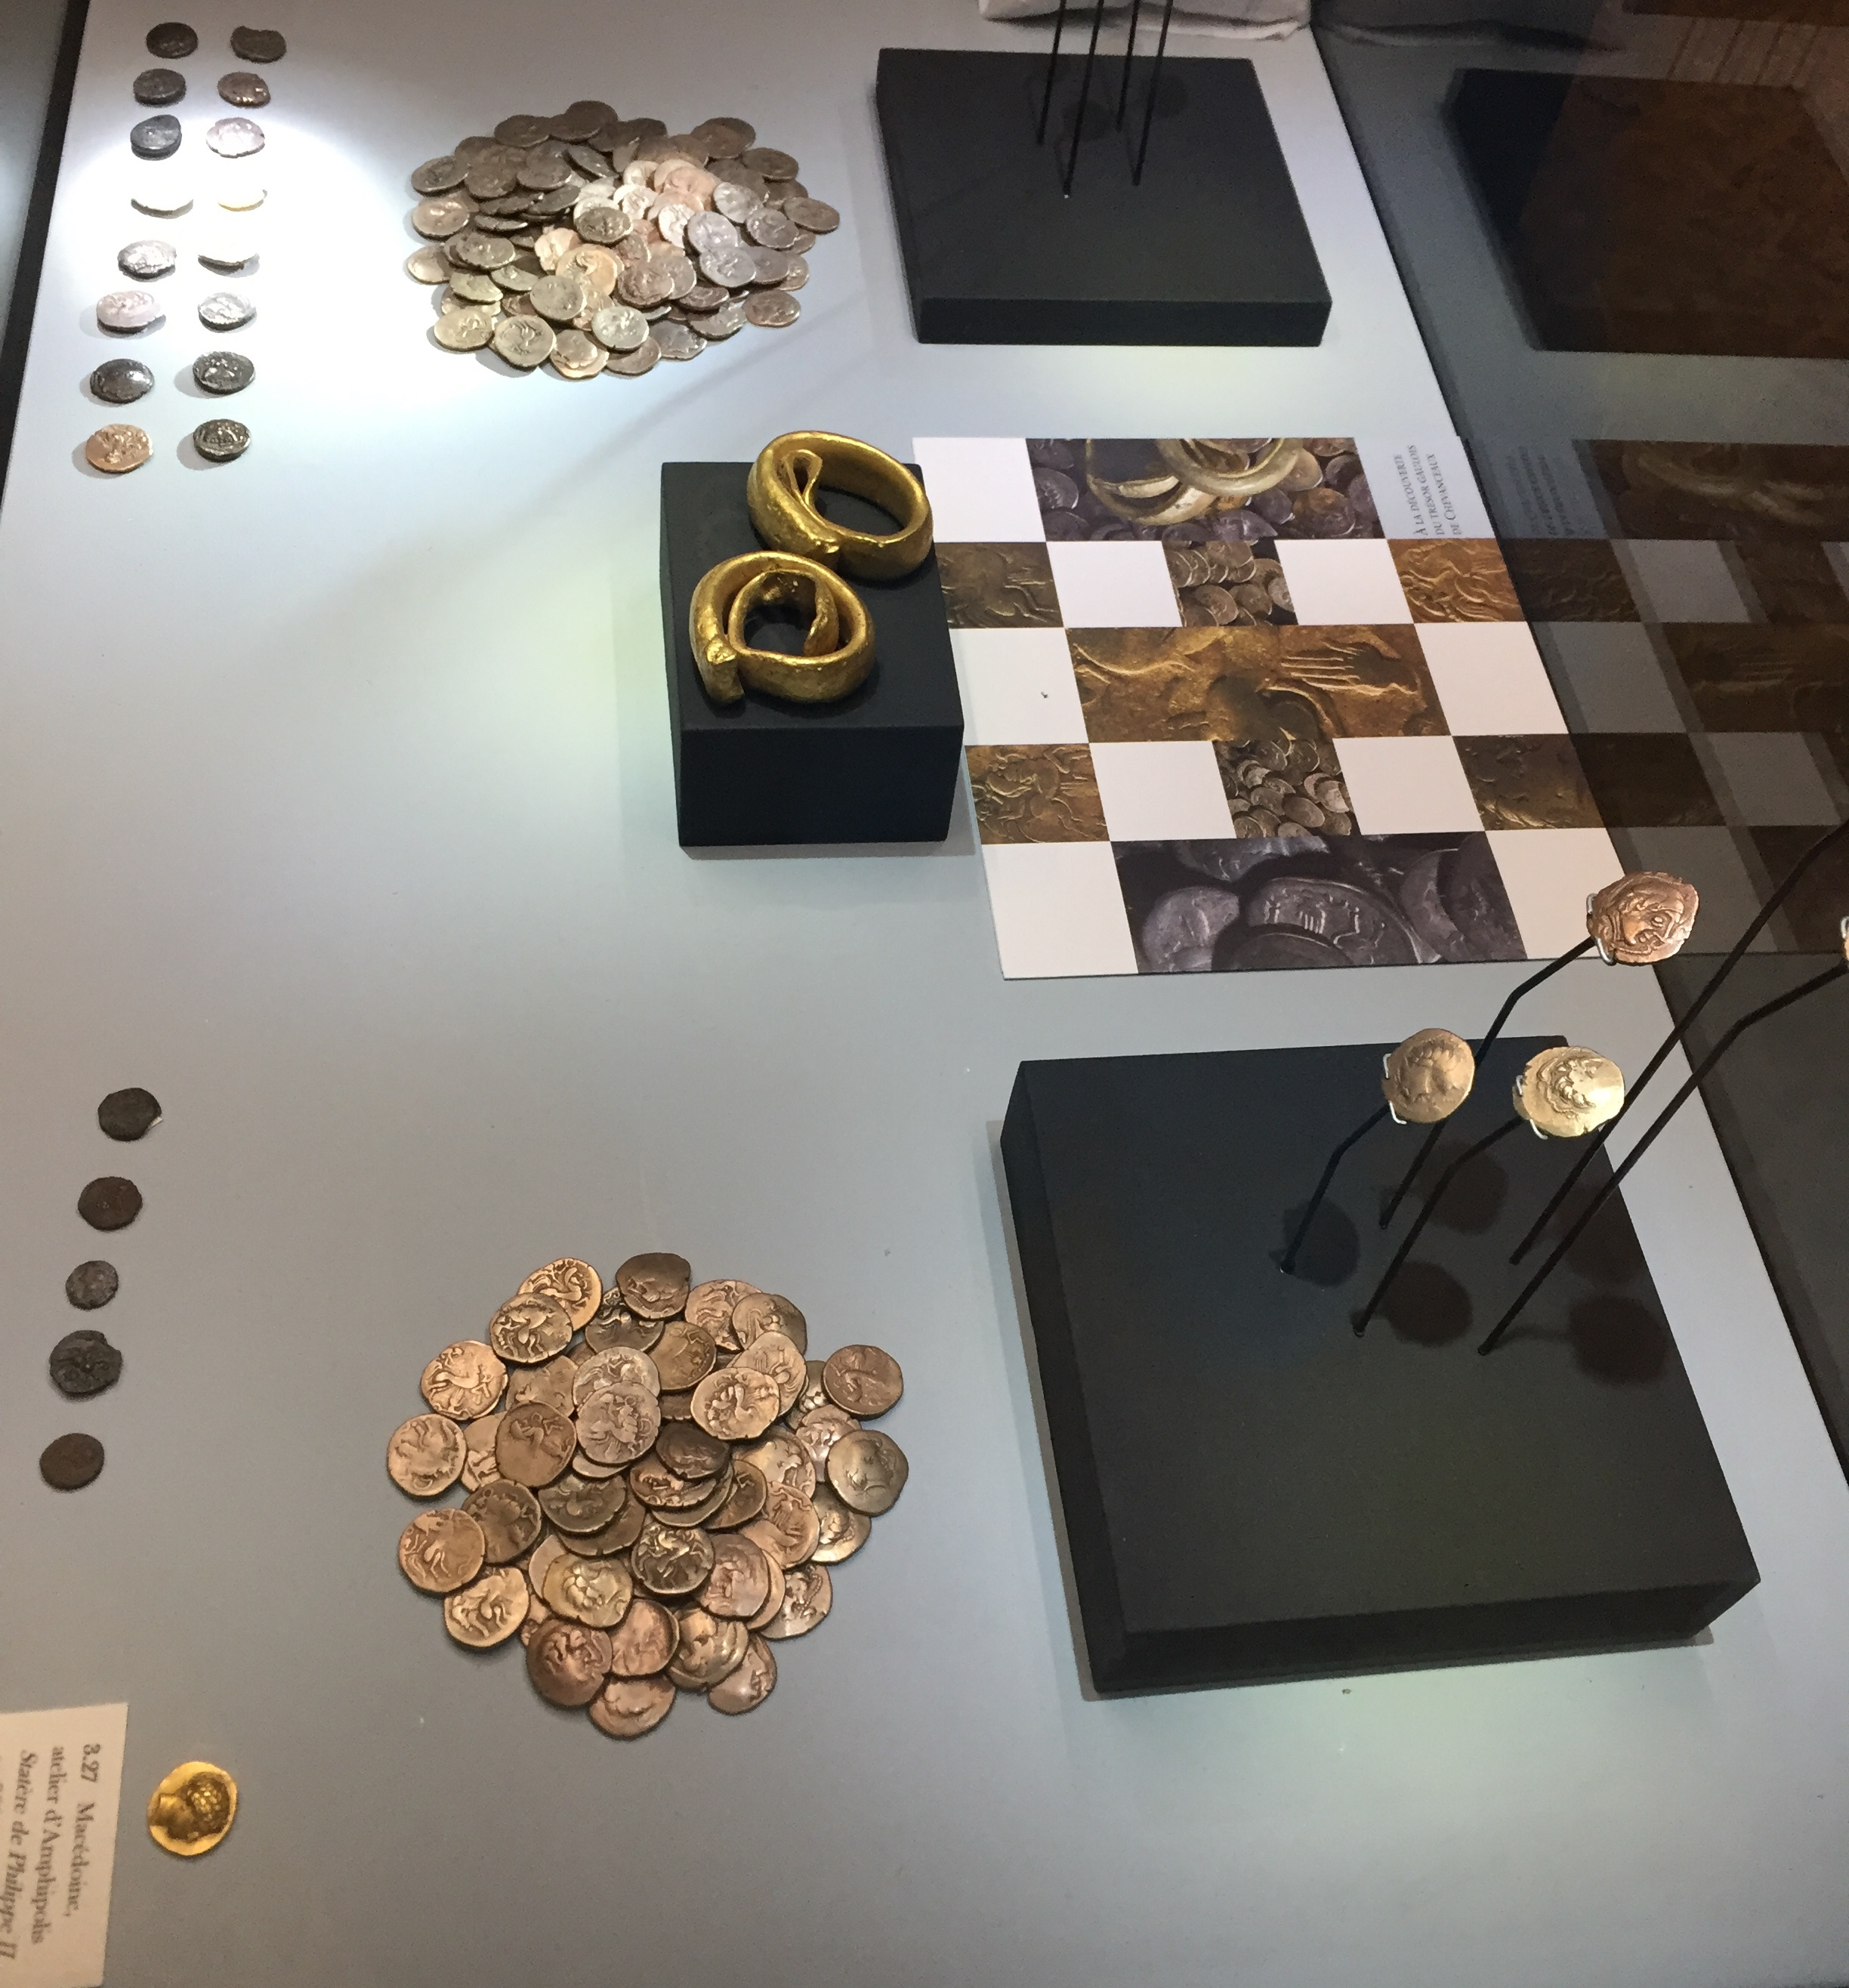 Pre-Roman gold, brass and bronze staters and gold curled ingots 4th-1st century BC